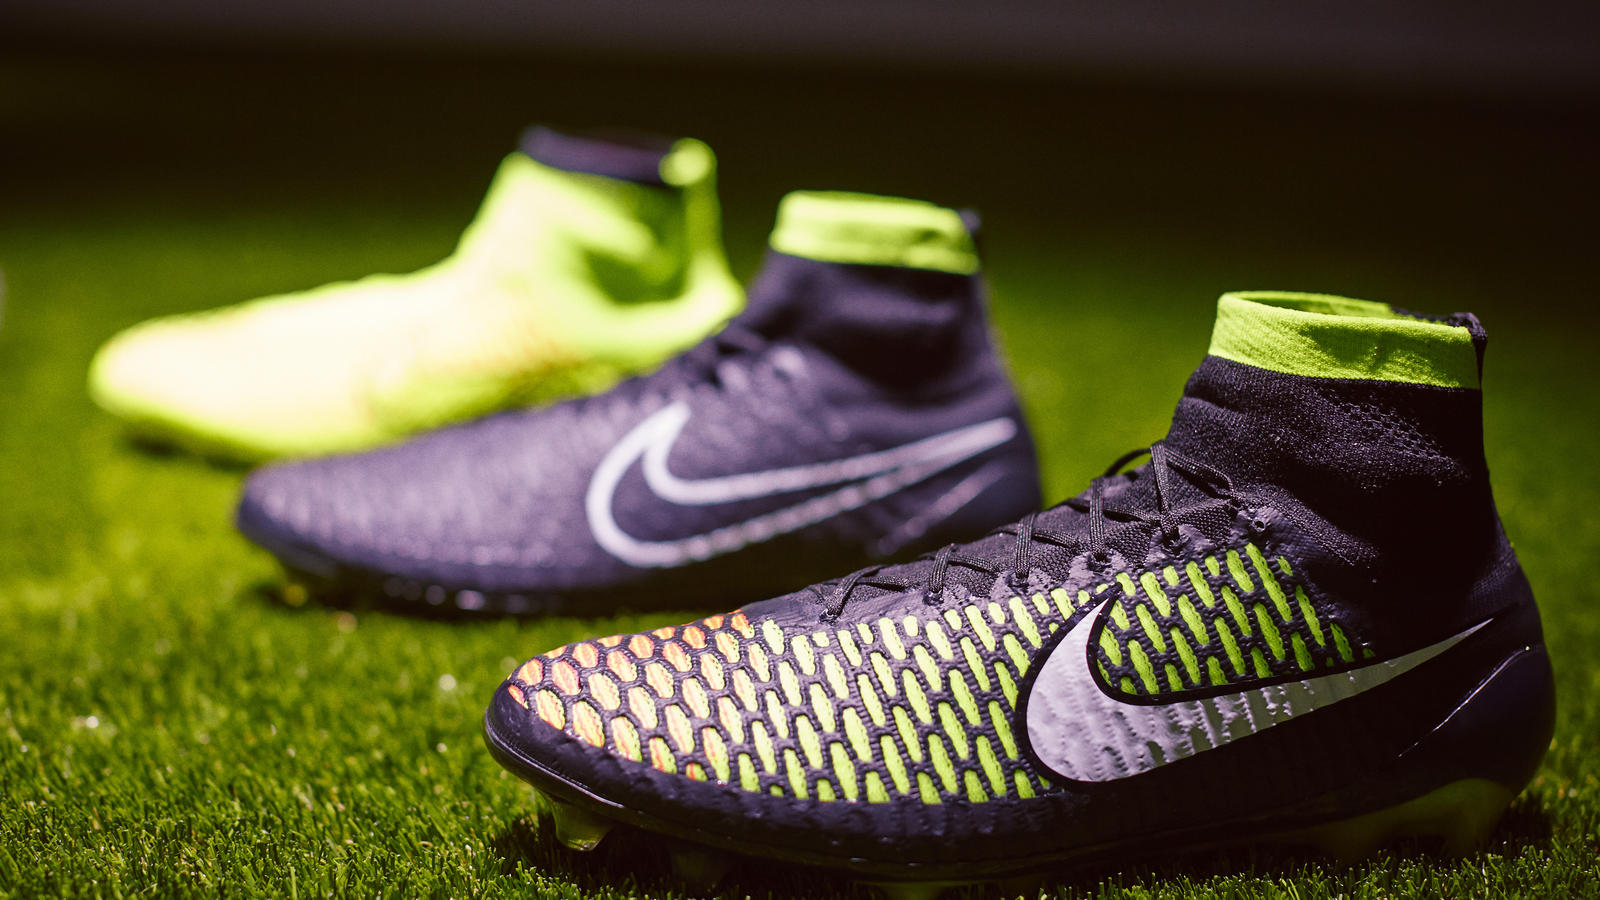 The Magista Black Volt